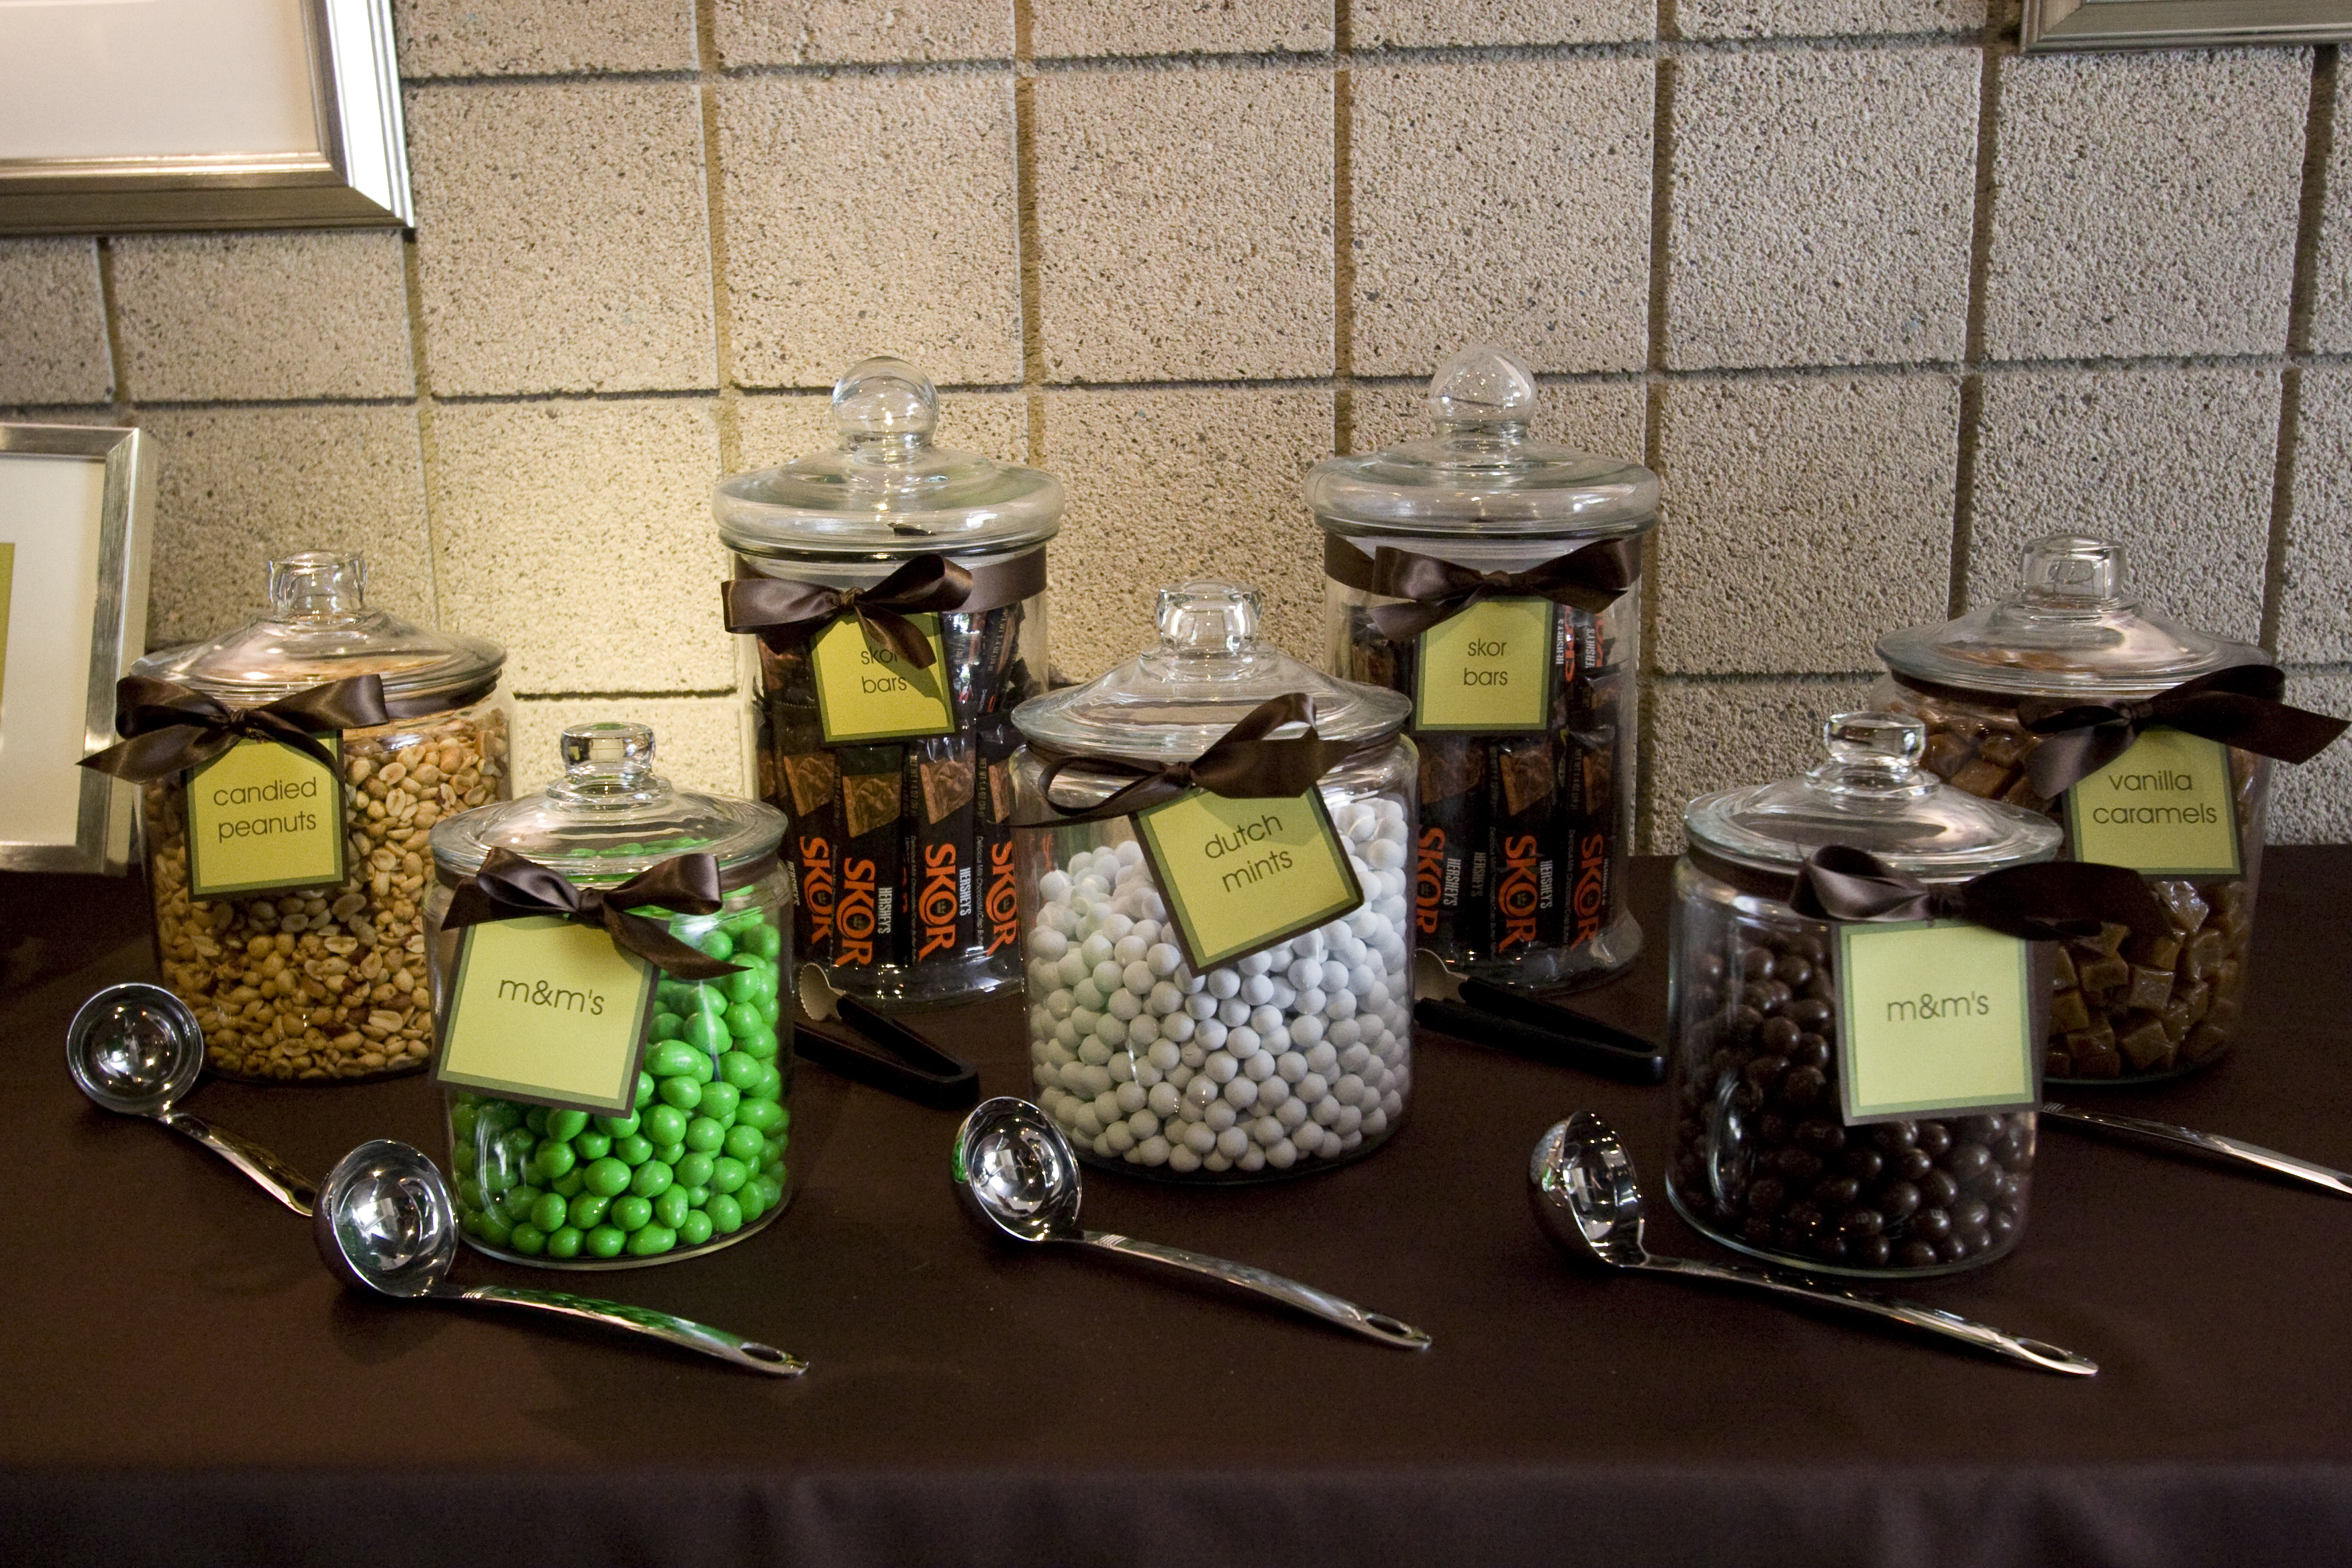 Dessert, Candy, llc, Bar, Jars, Suzanne the party girl